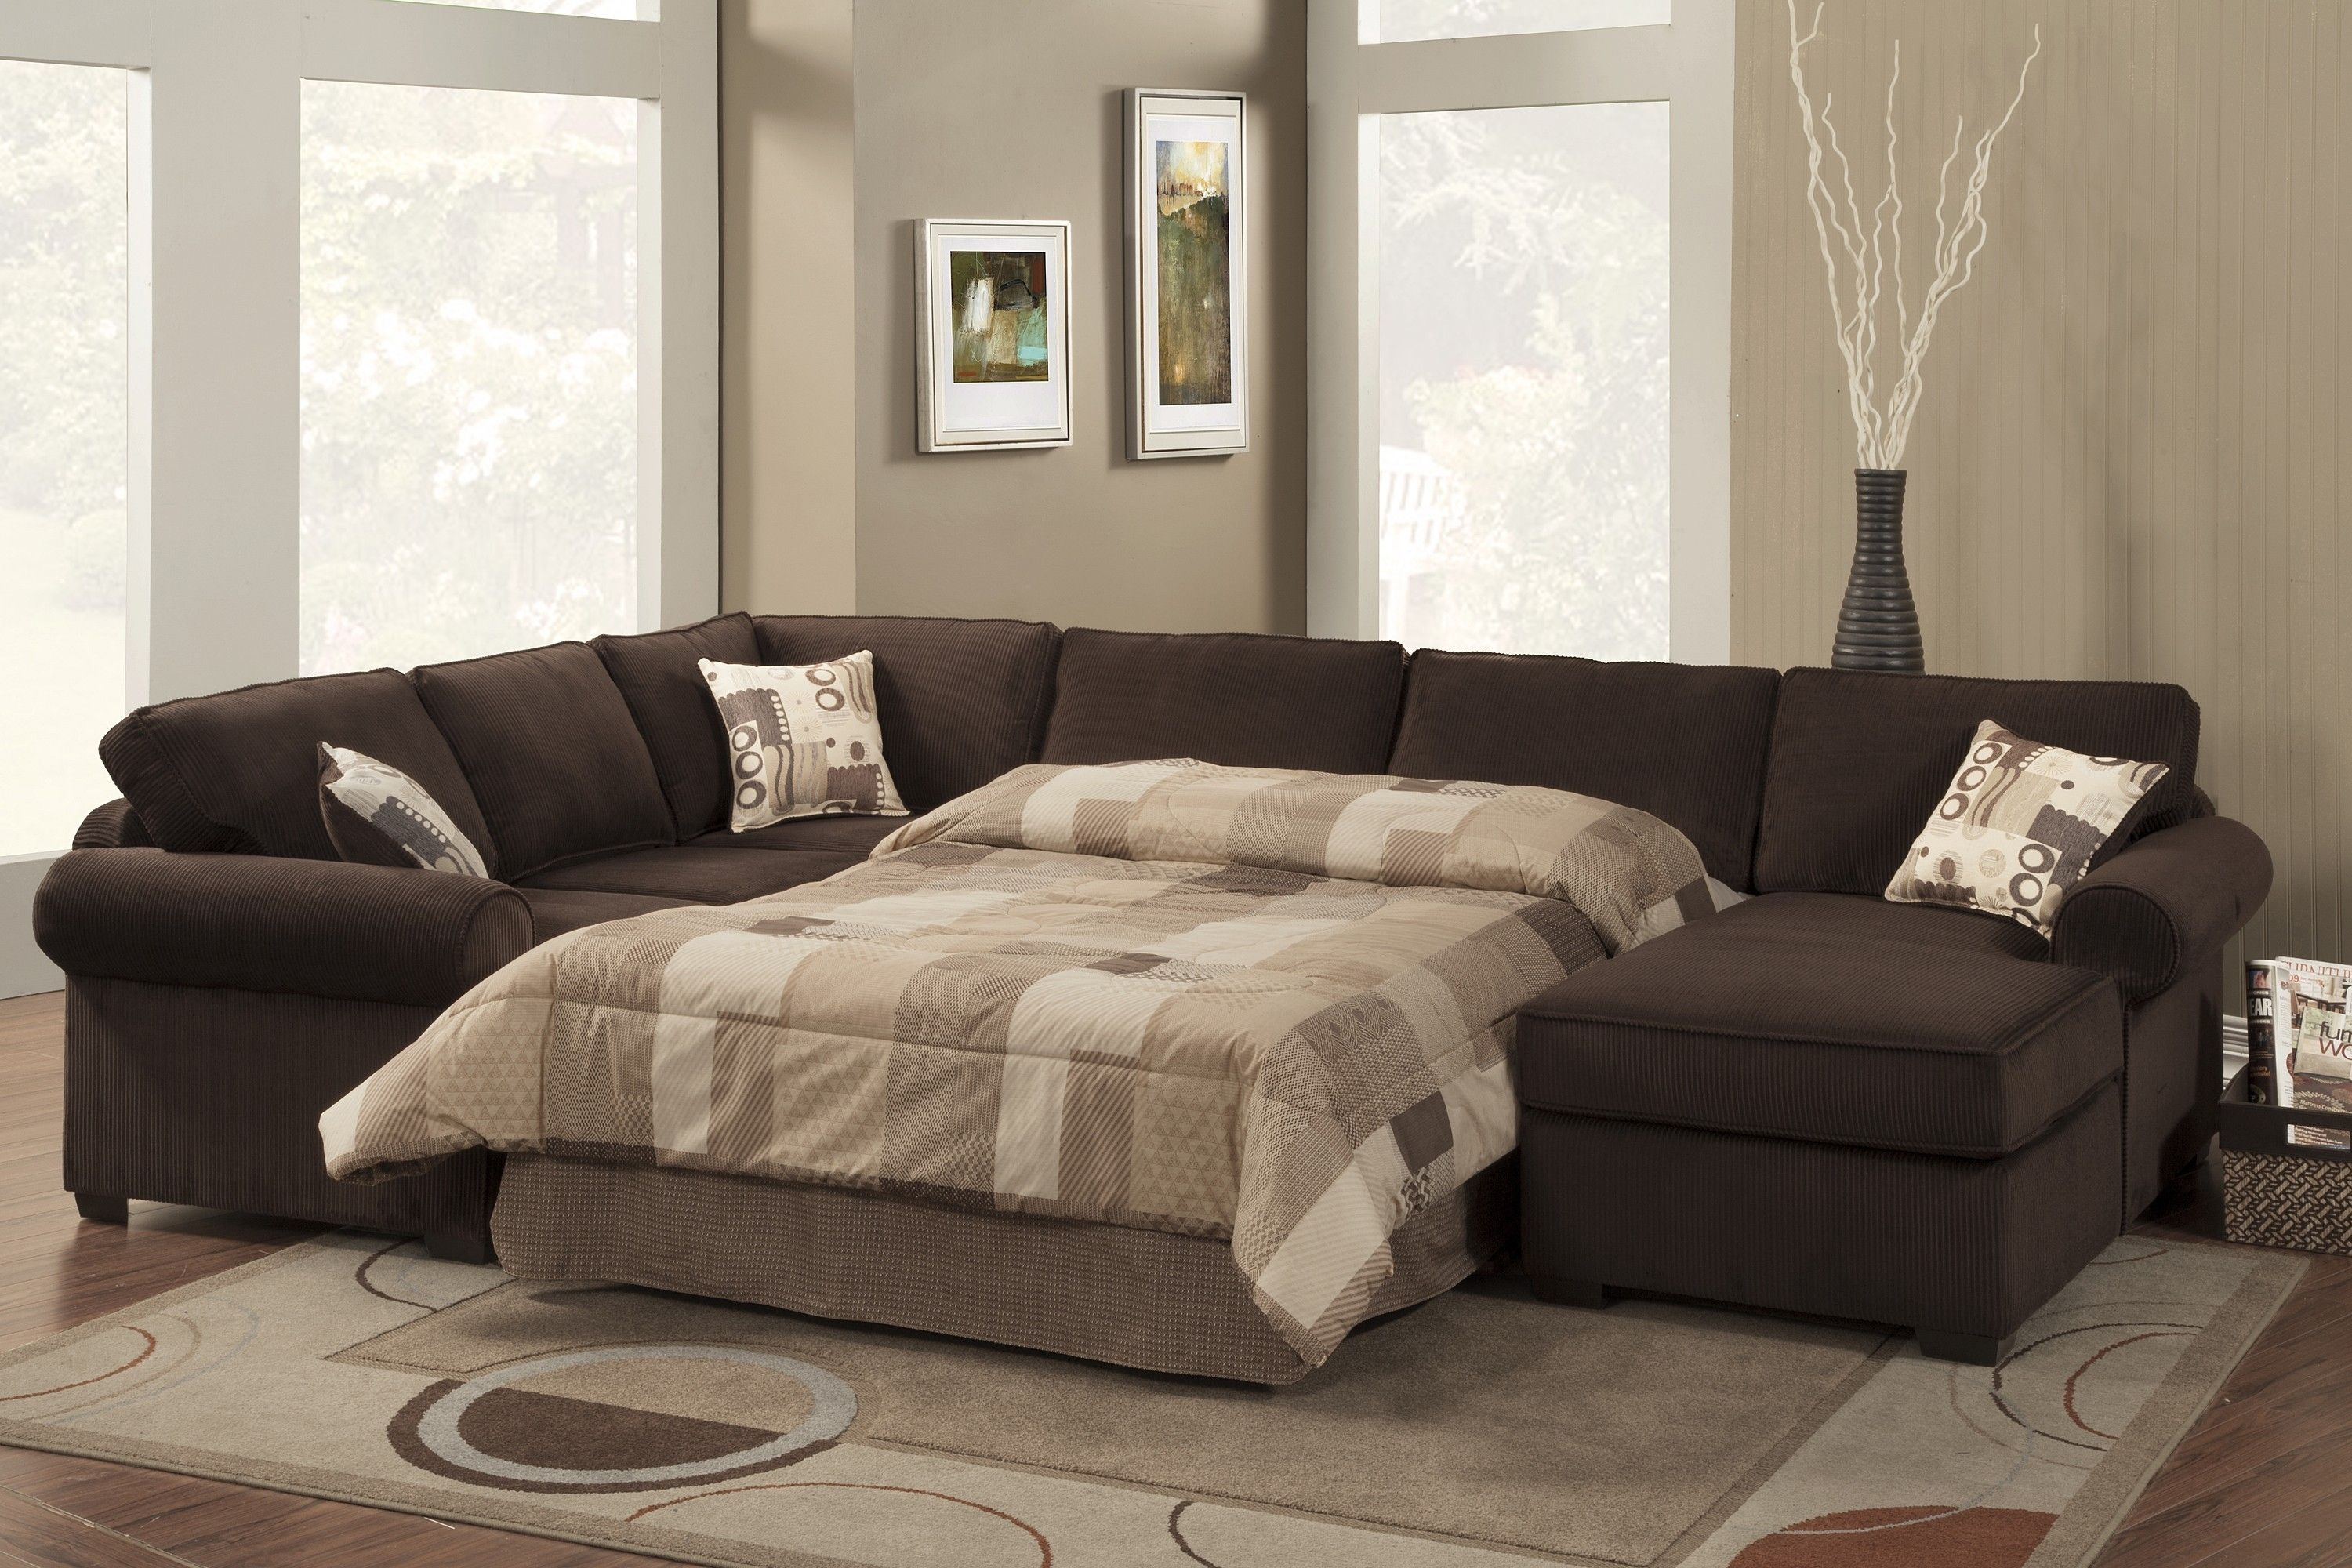 Sectional Sleeper Sofa With Queen Bed Brown Sectional Sofa